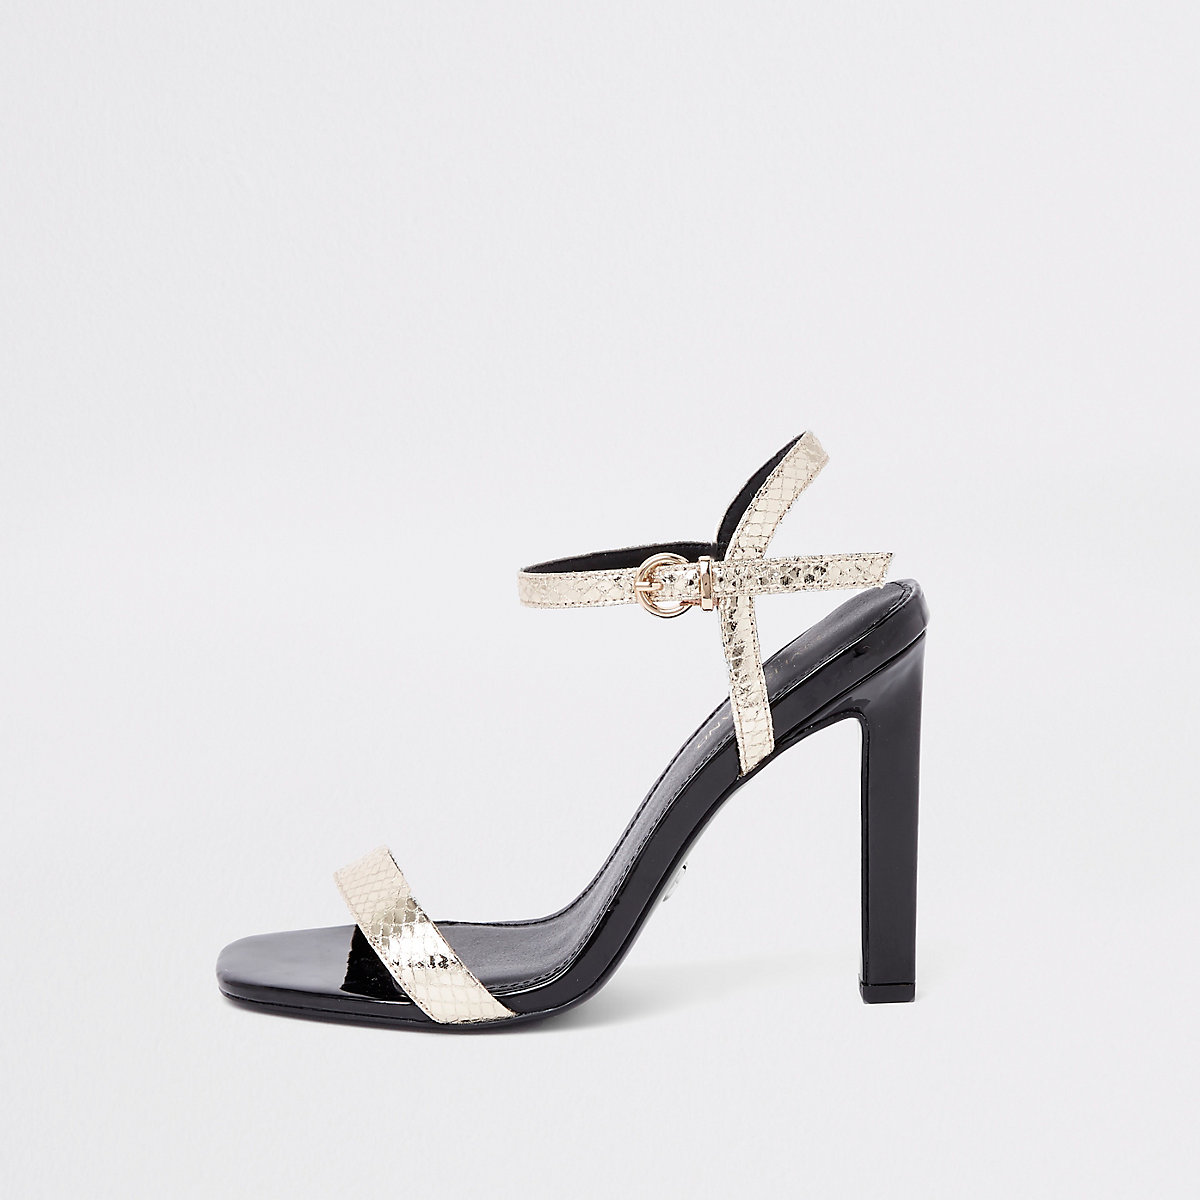 Black metallic barely there sandals